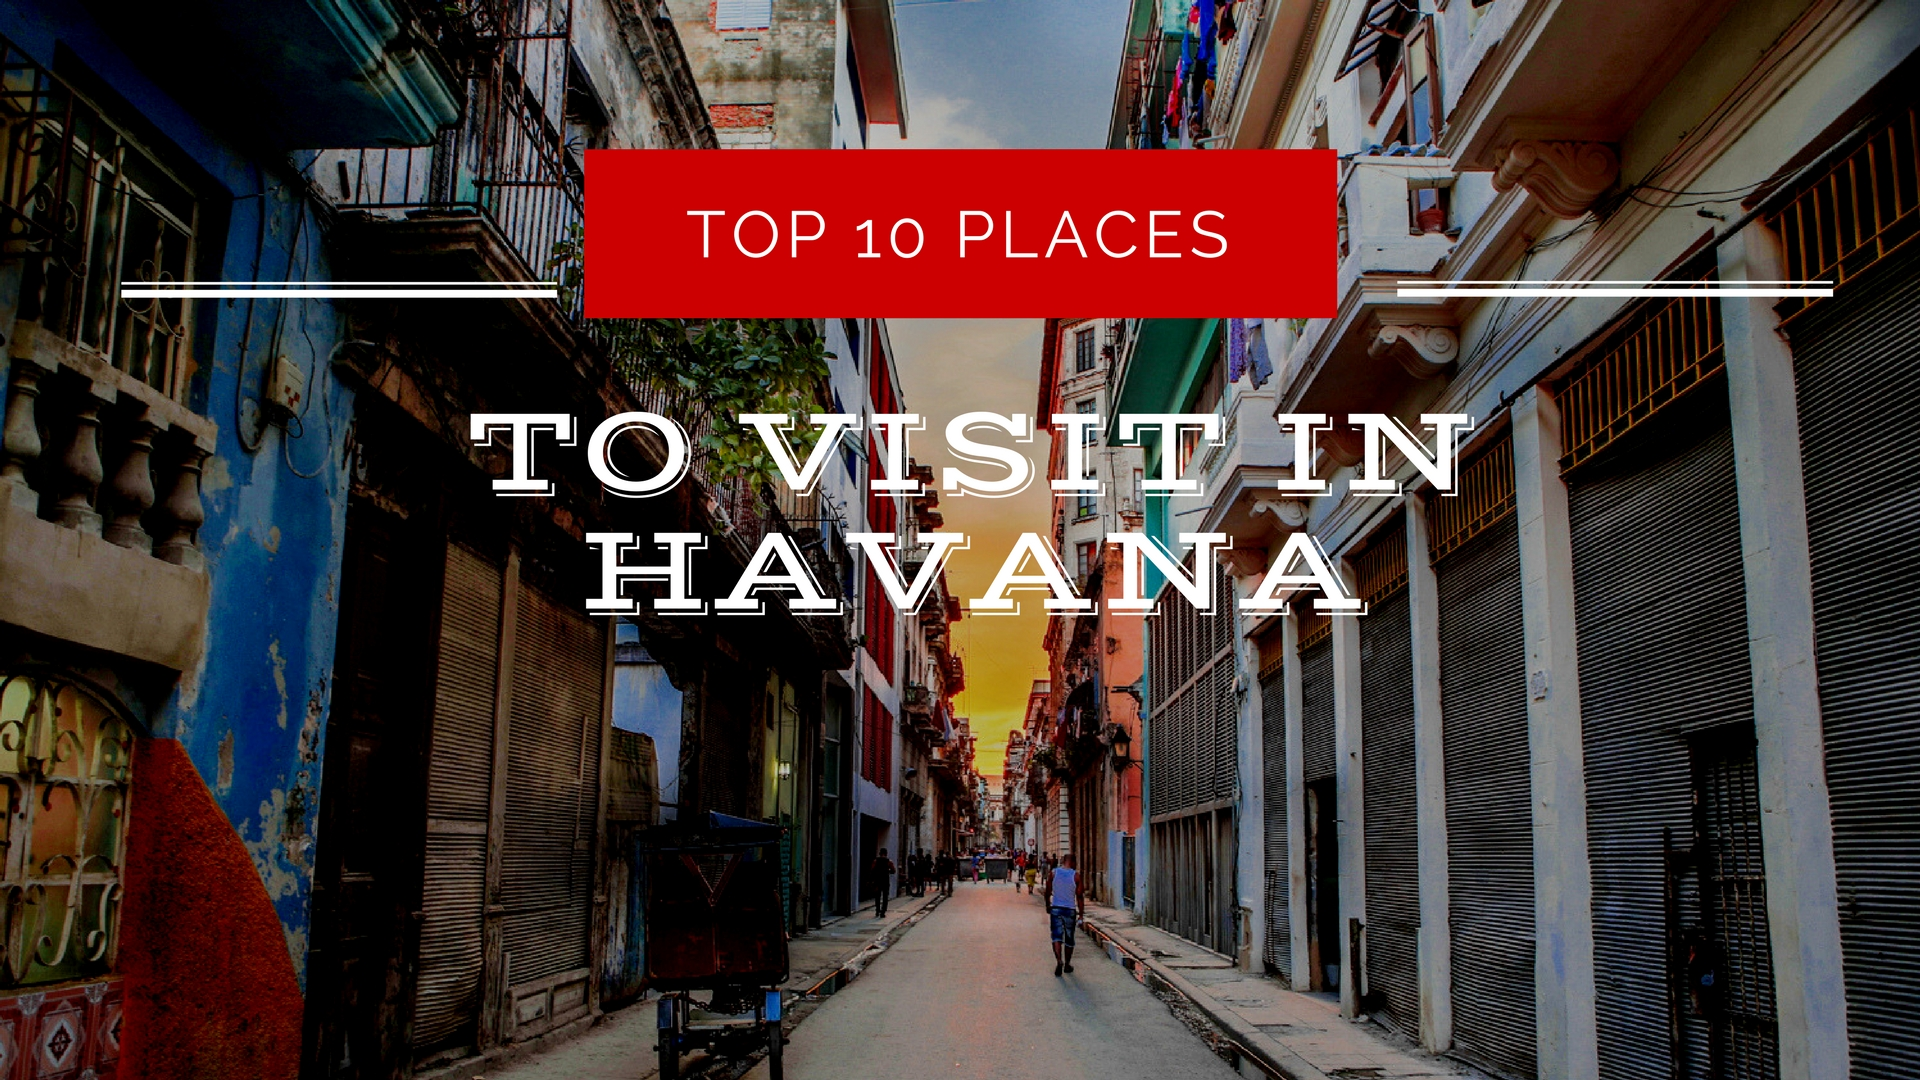 Top 10 places to visit in havana cuba in 2017 for Top 10 places to travel to